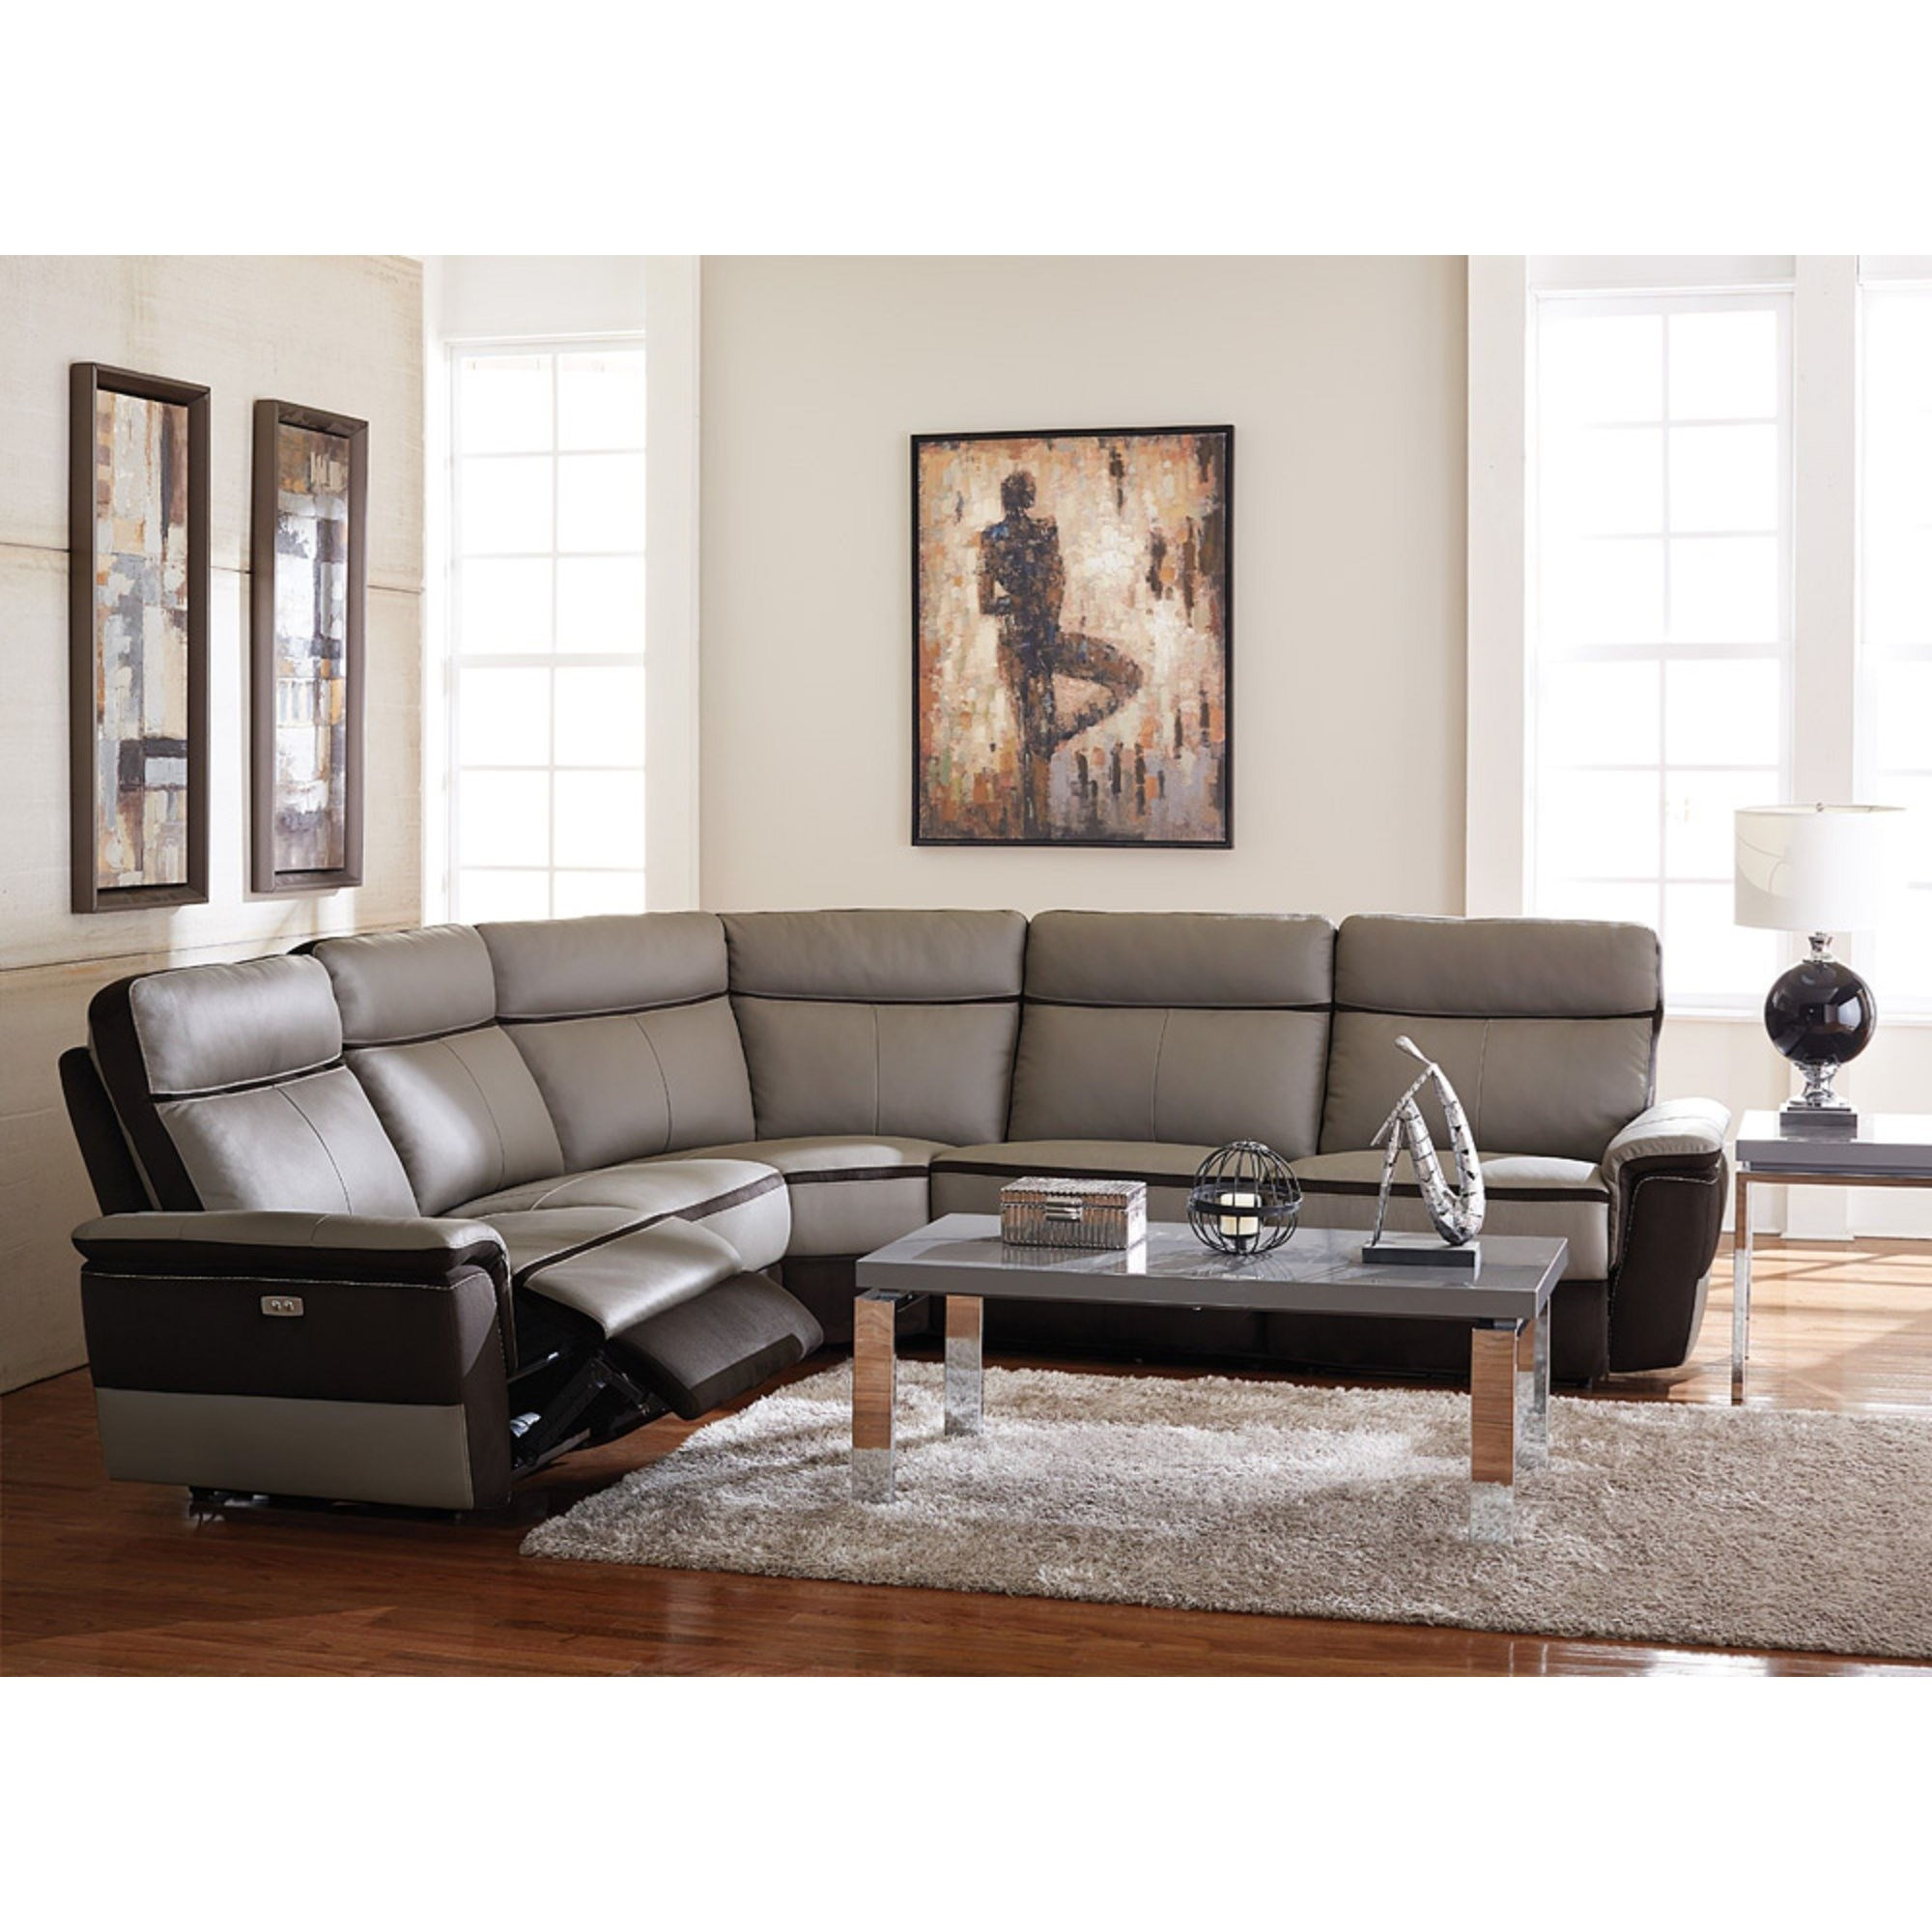 Contemporary Sectional: Homelegance Laertes Contemporary Power Reclining Sectional